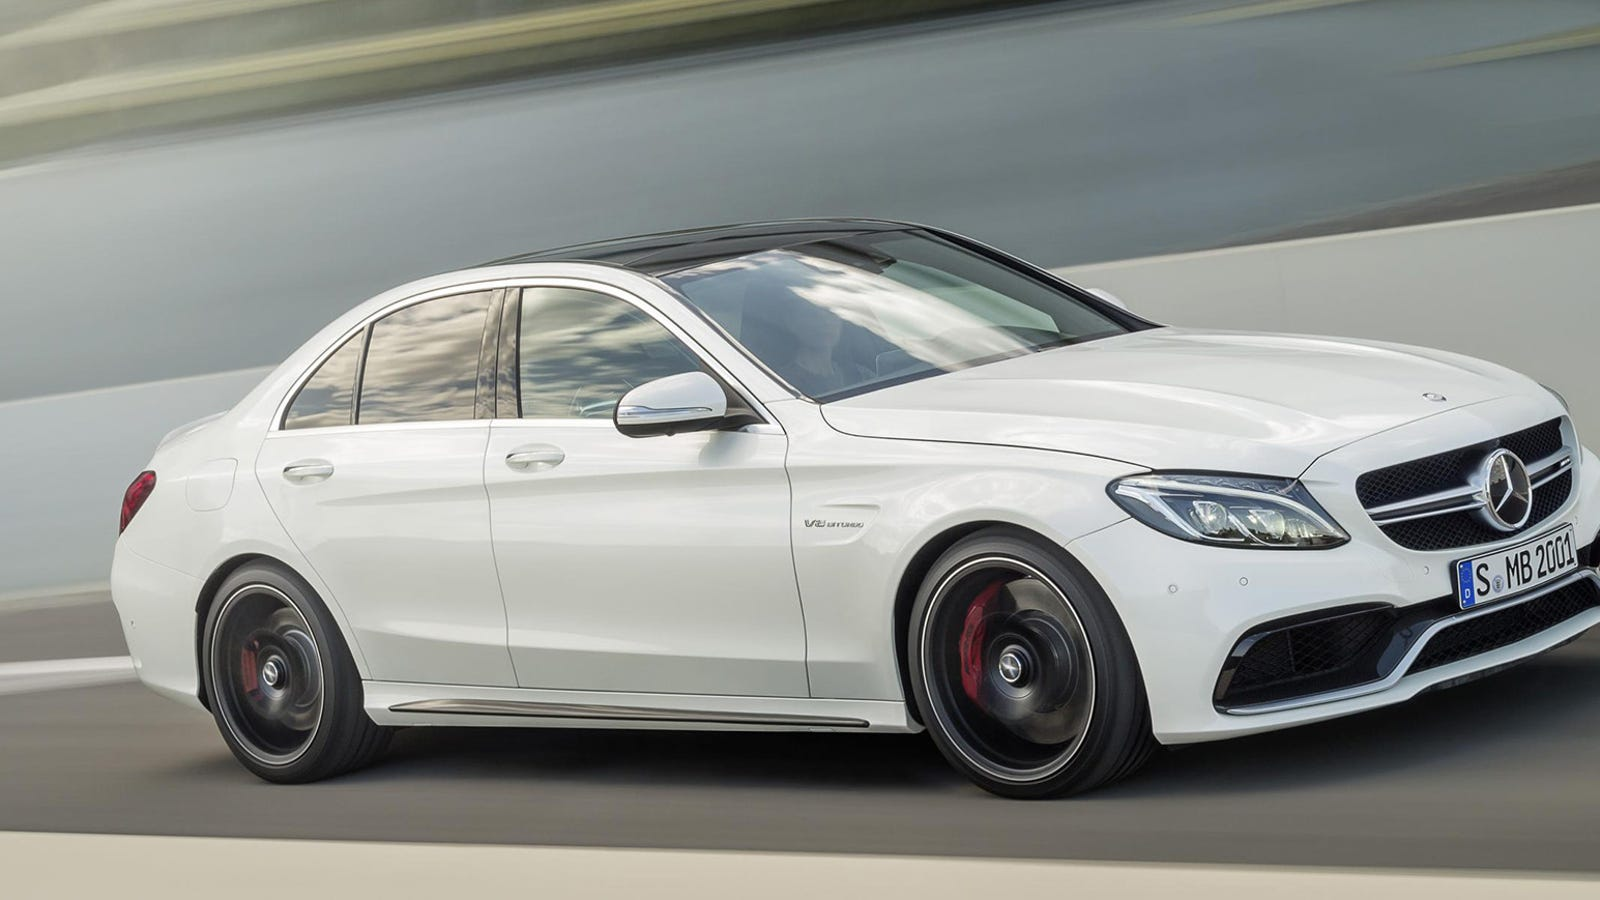 the 2015 mercedes-amg c63 is a hell of a lot better on gas